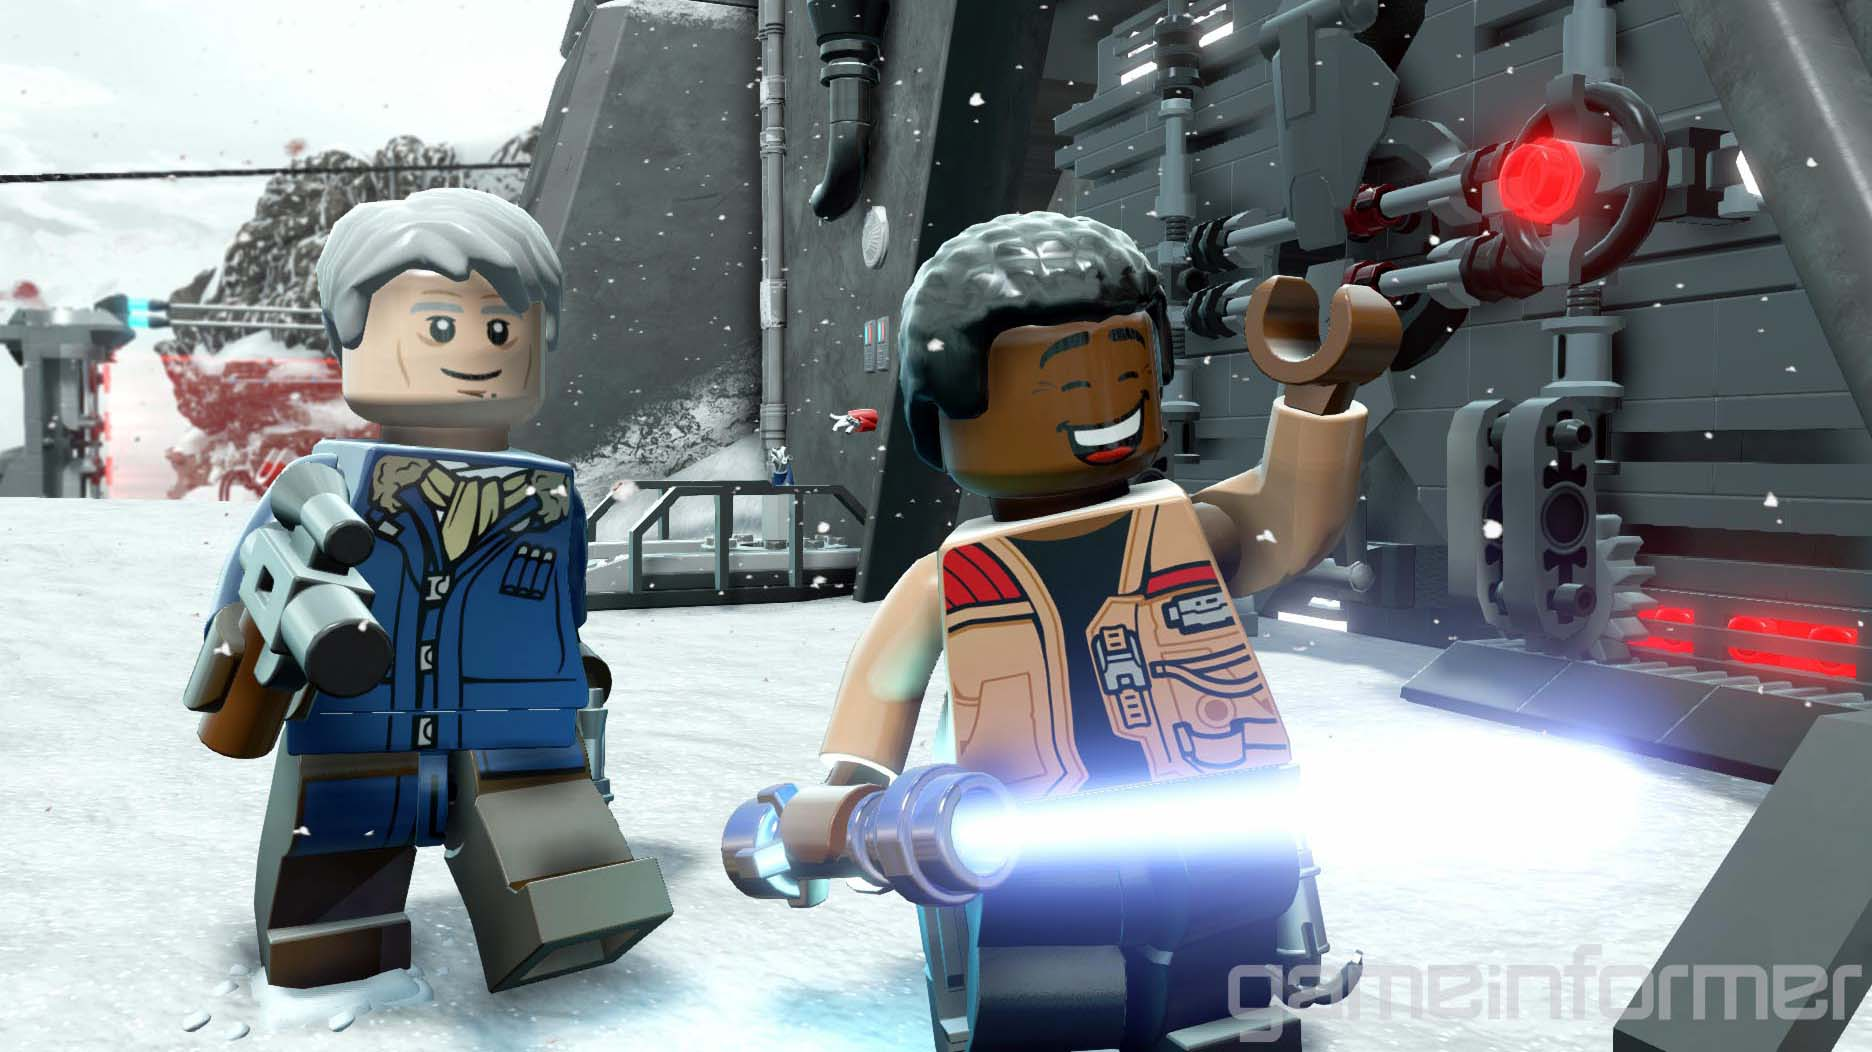 Lego Star Wars The Force Awakens 2016 Wallpapers 4K 1872x1052